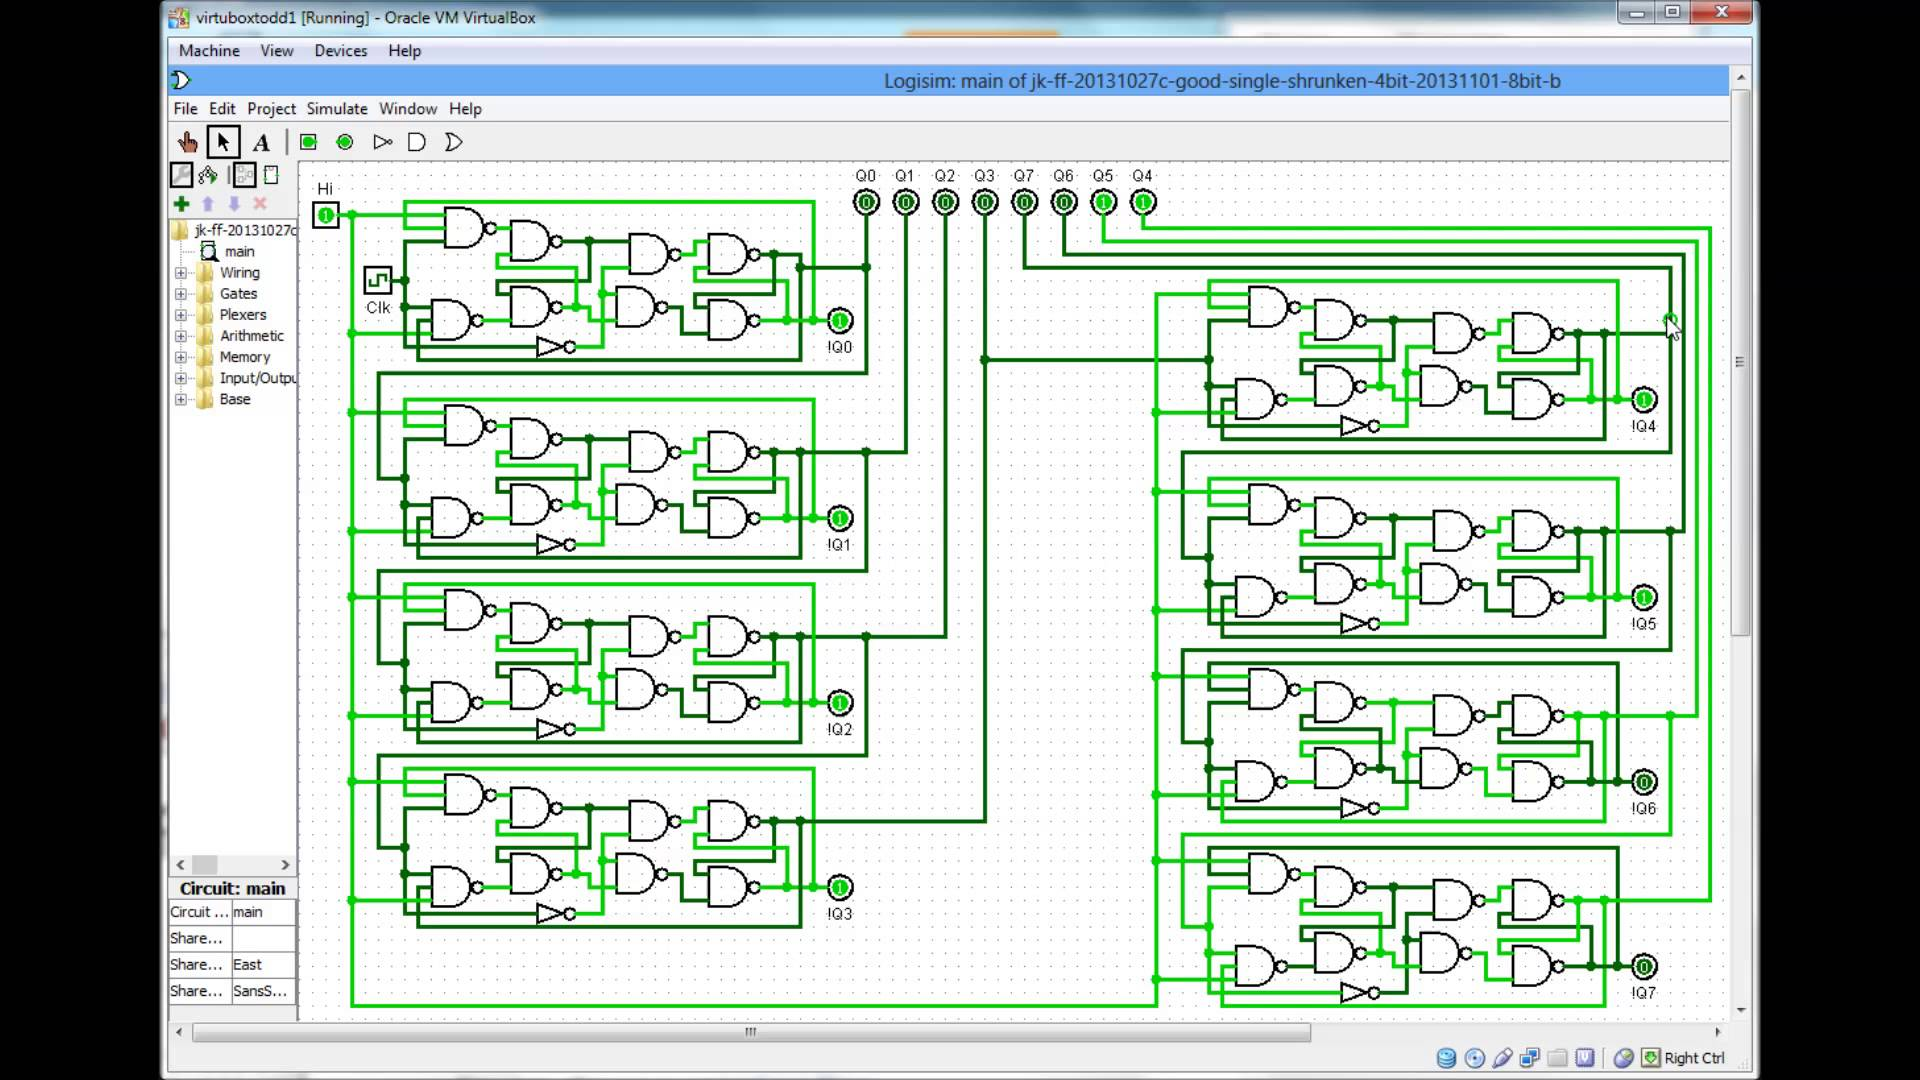 T Flip Flop Circuit Diagram Flipflop Drawing At Free For Personal Use 1920x1080 Digital Bit Nand Gated J K Ripple Counter Ace Appetite